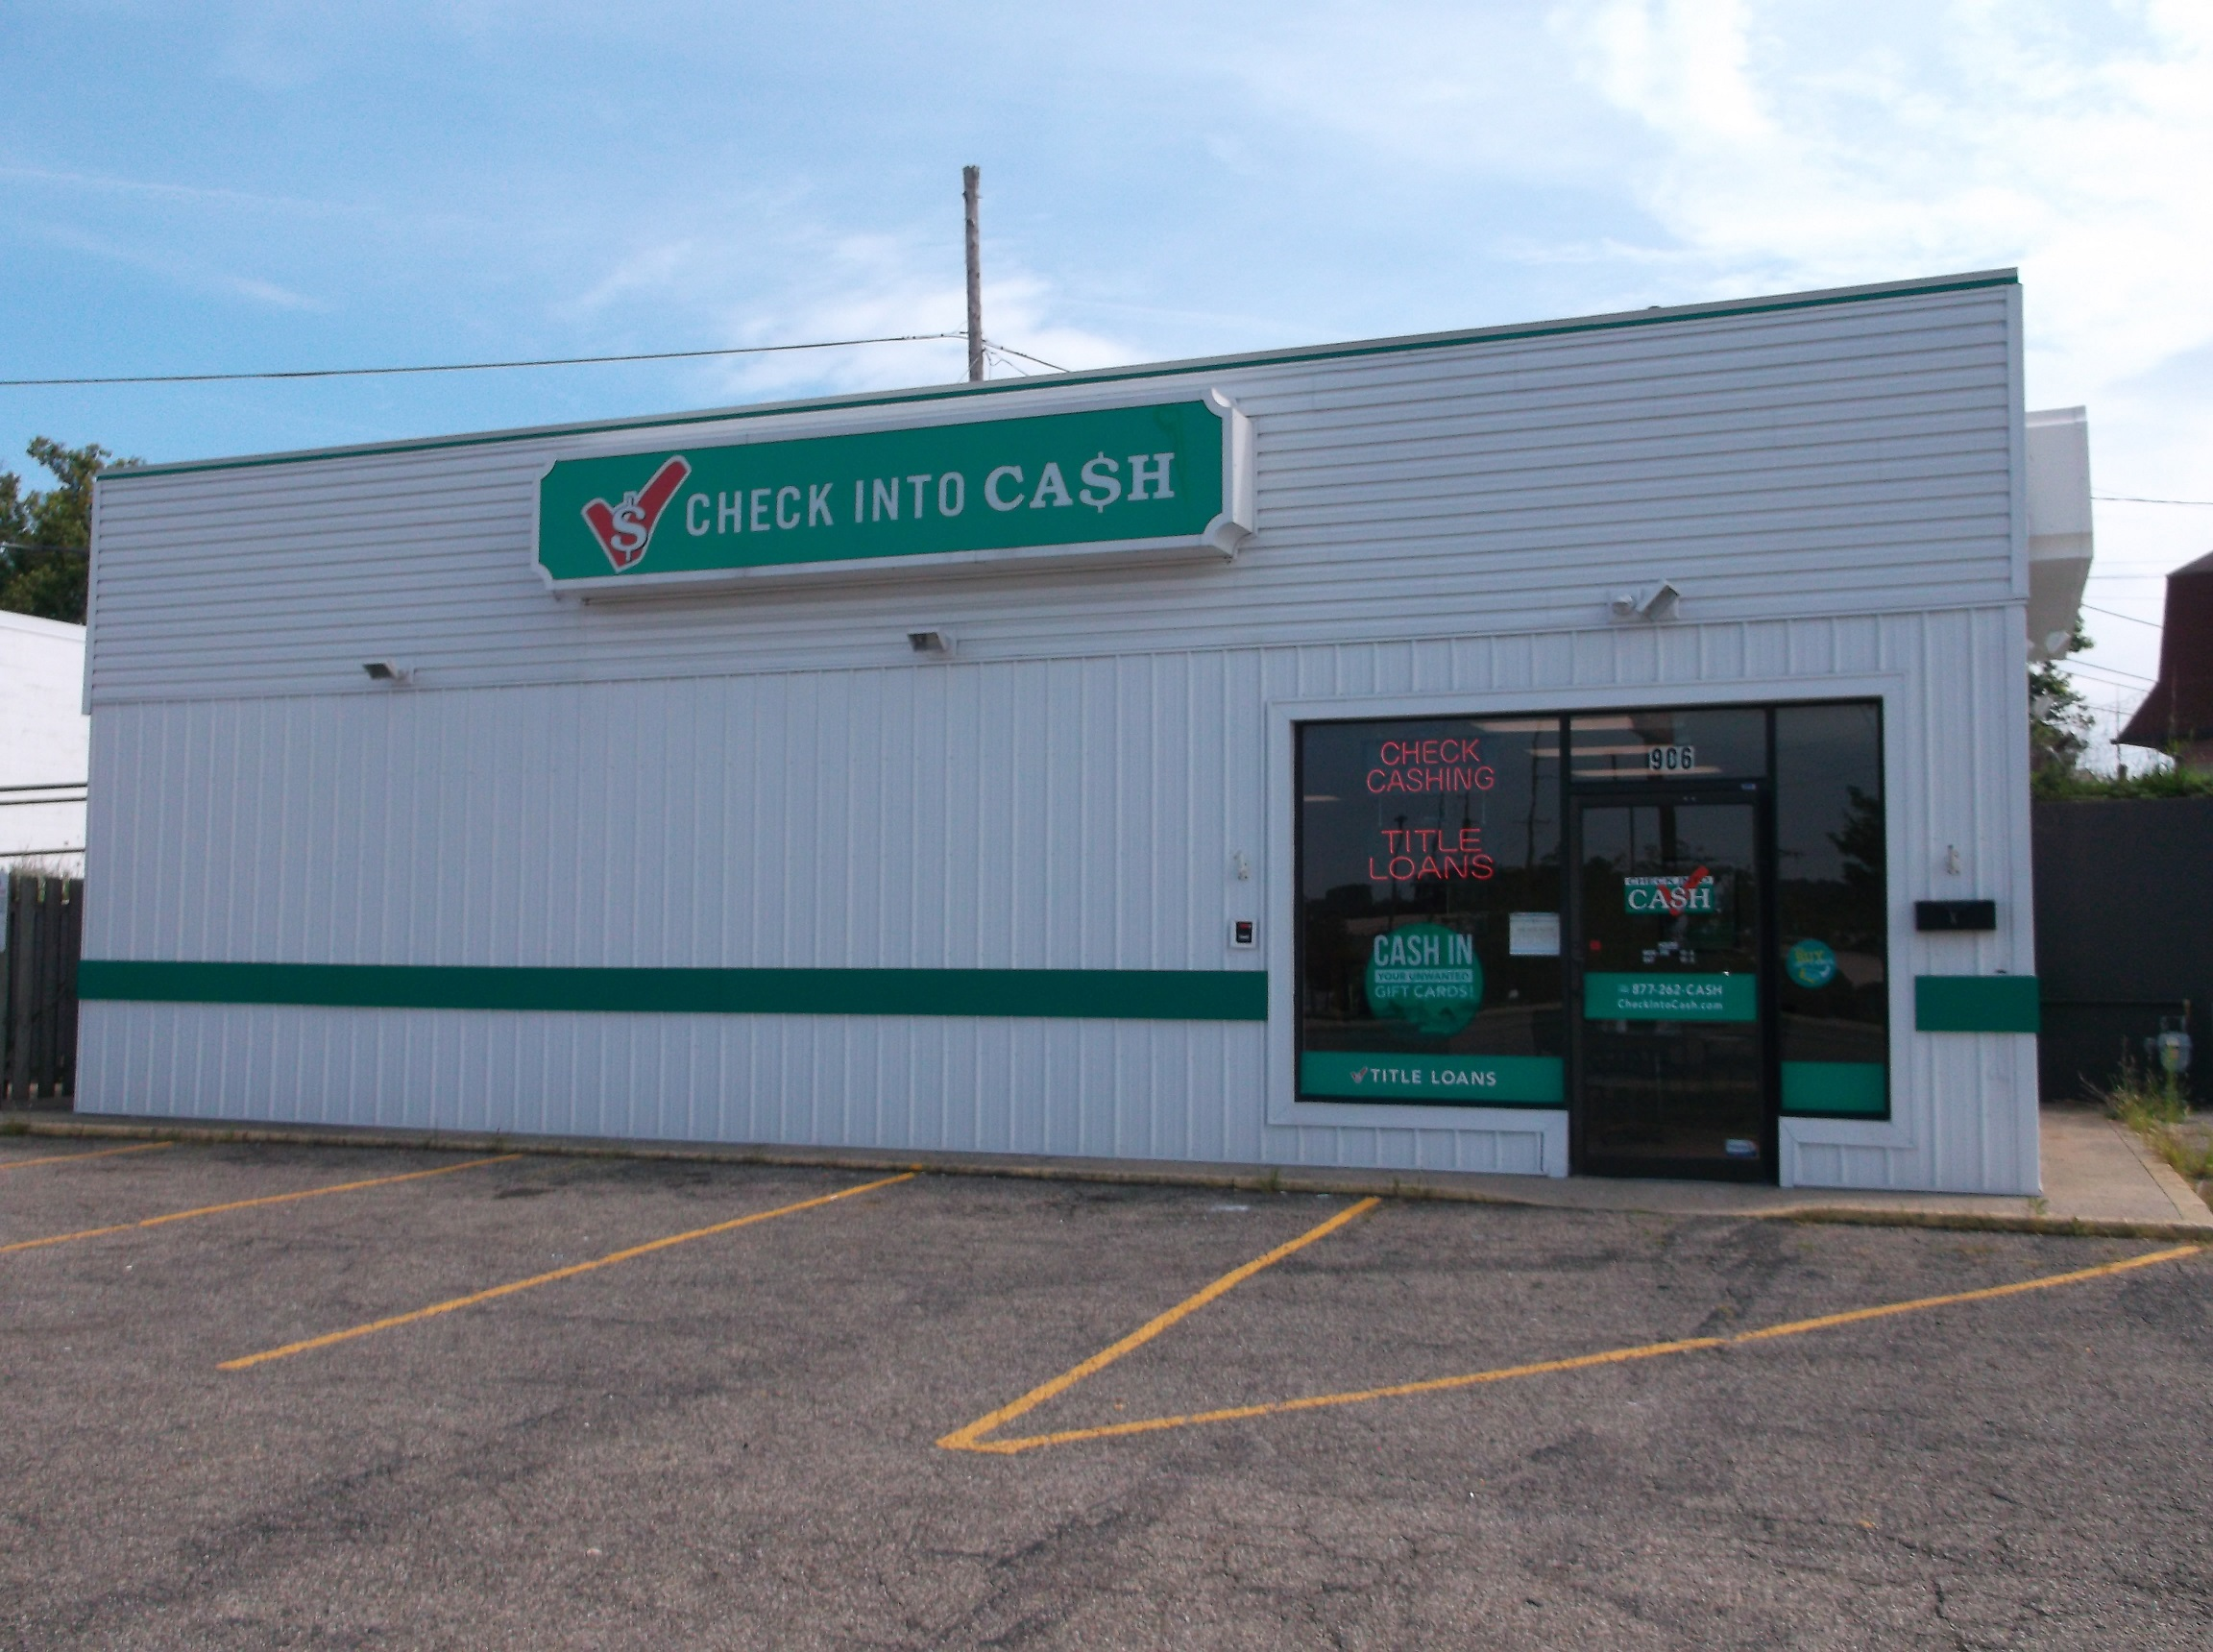 Cash advance in elkhart indiana image 3